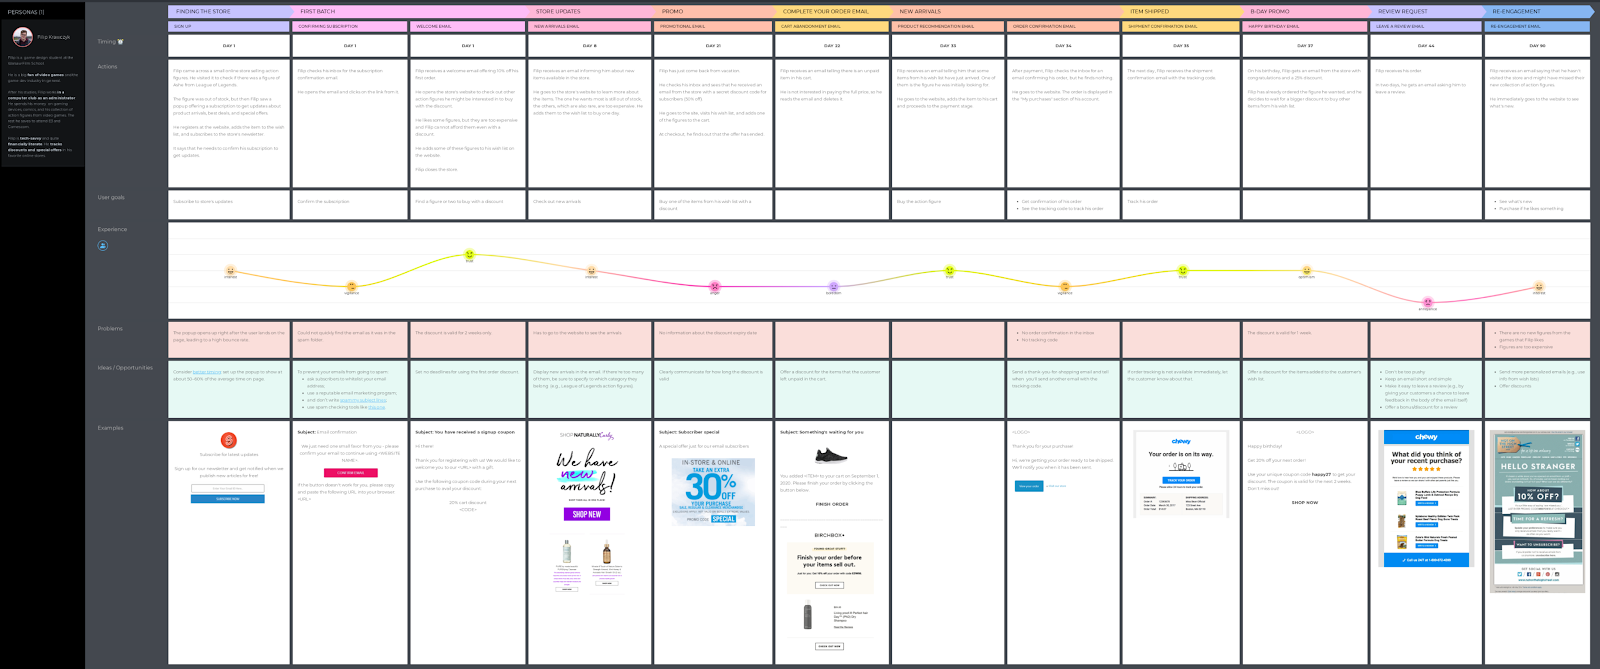 email marketing journey map